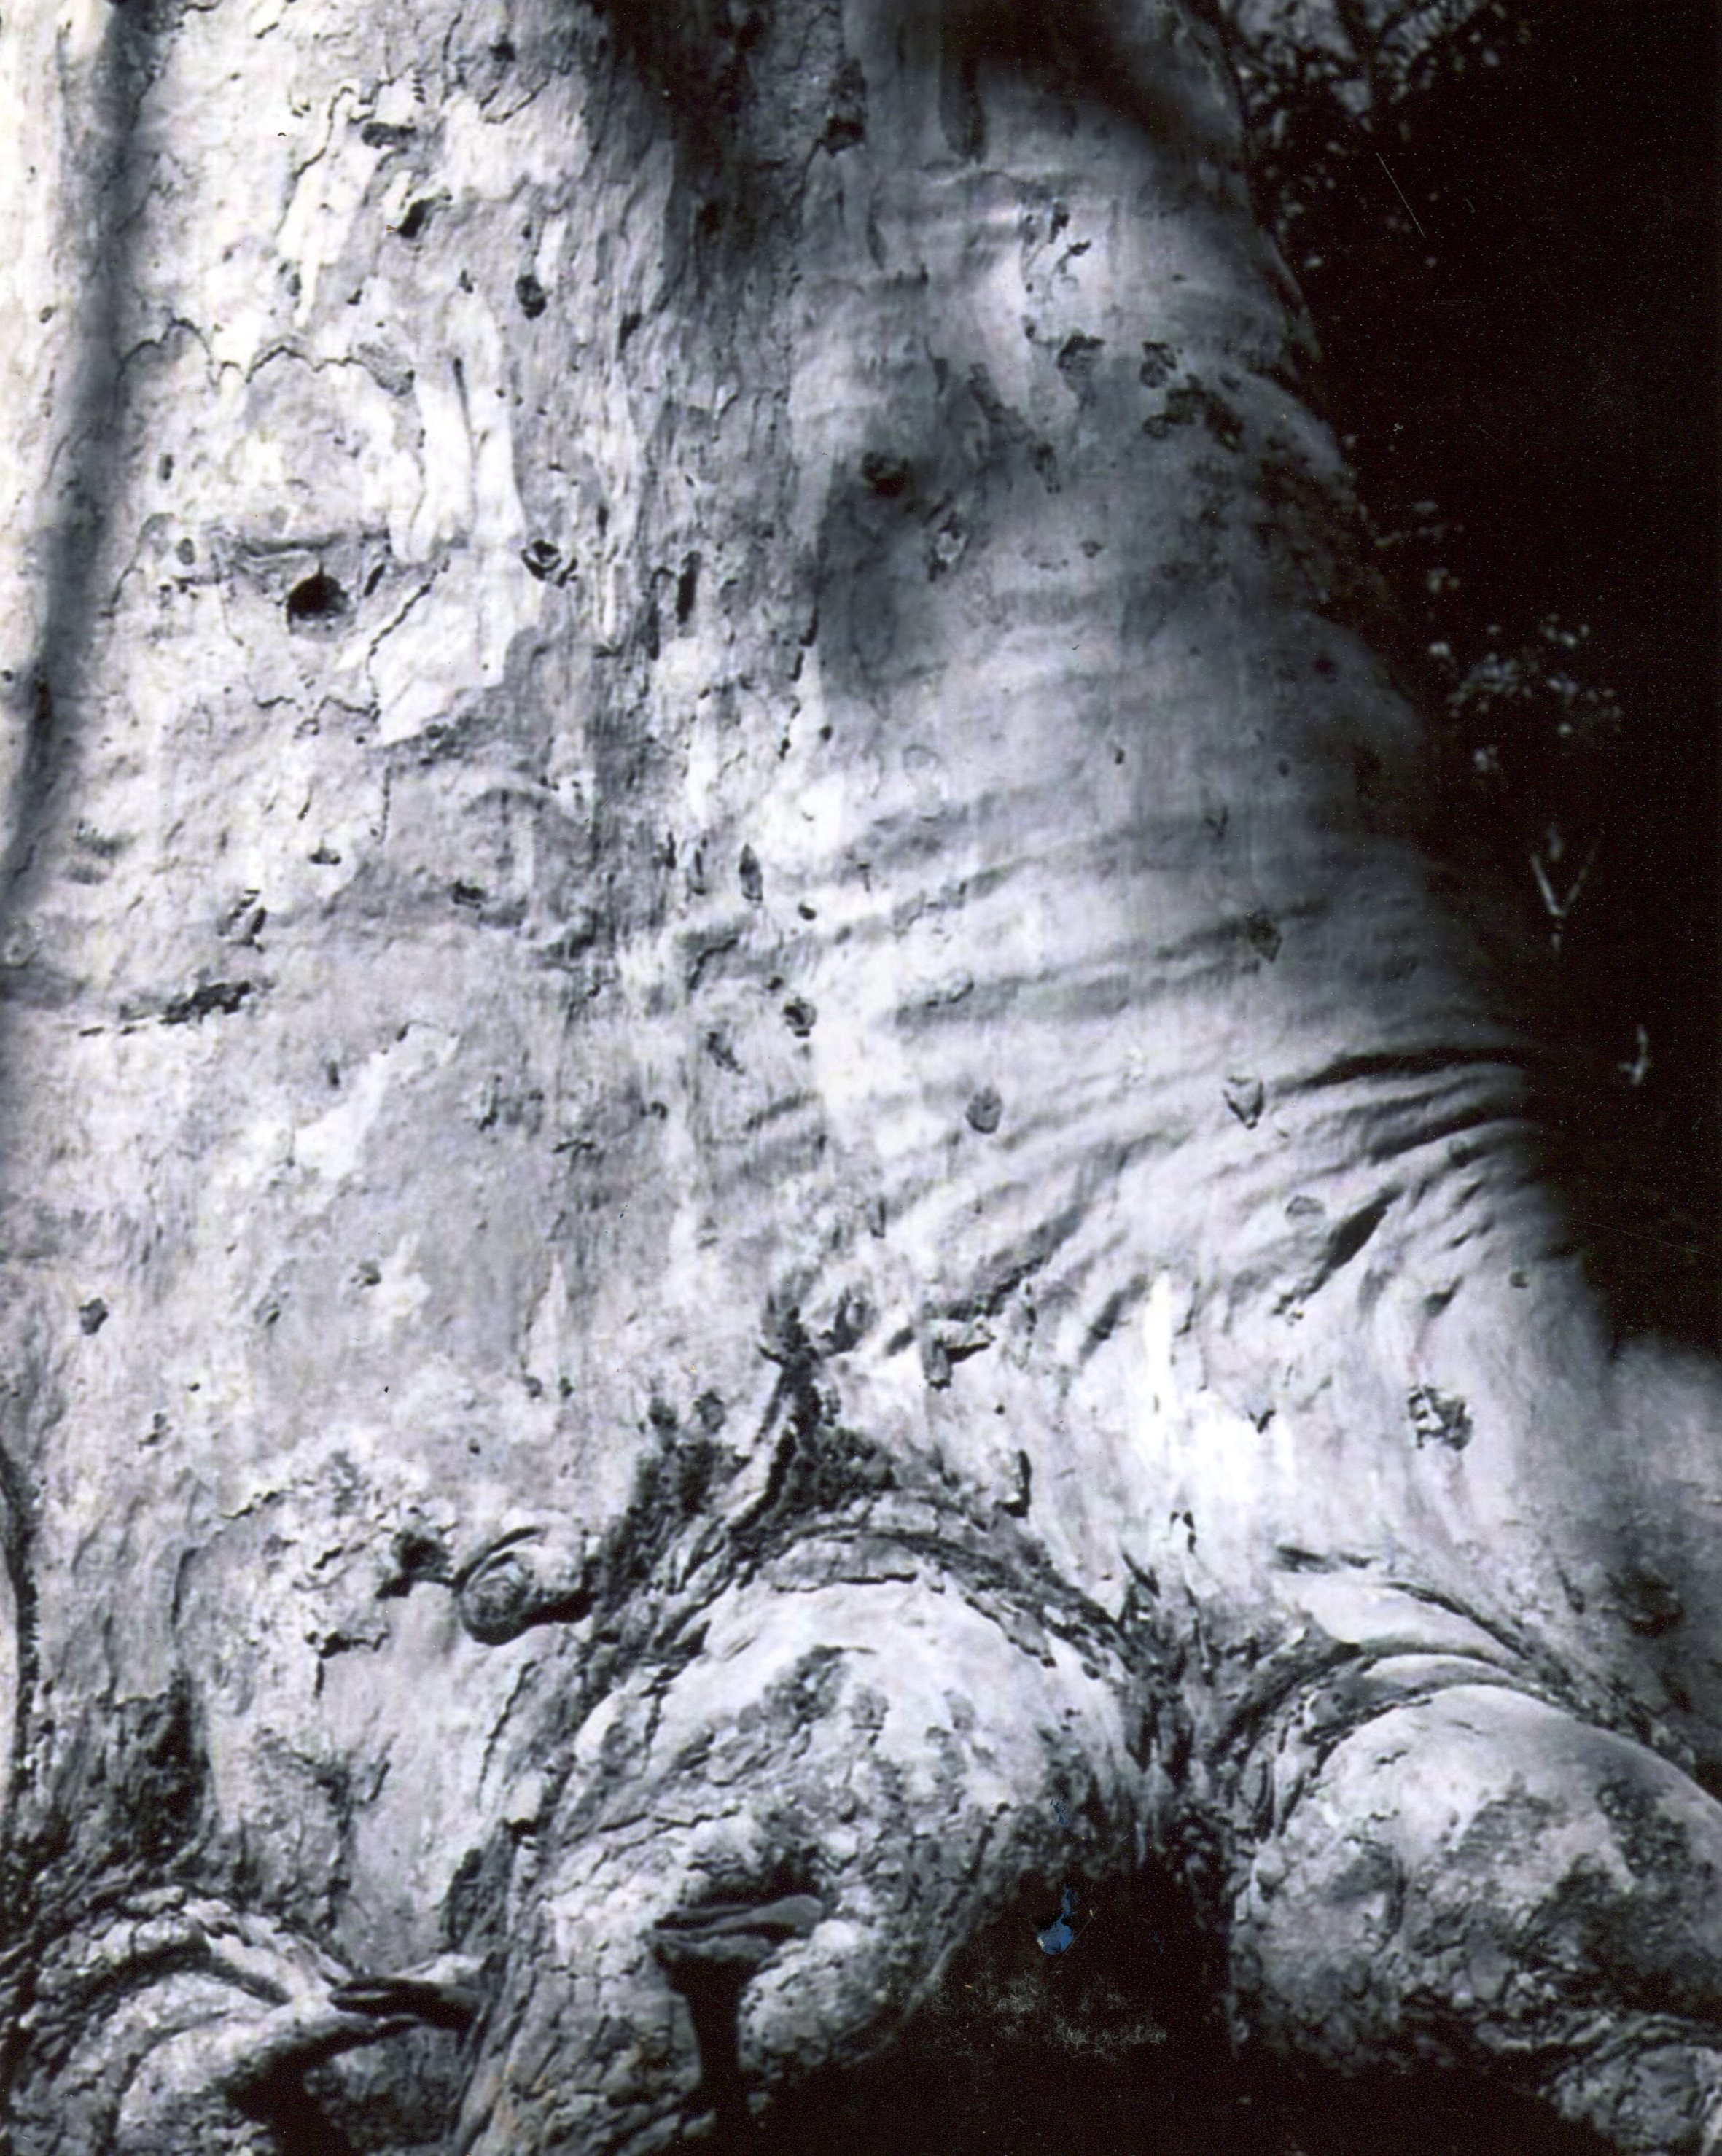 44A PAUL MURRAY, BLACK AND WHITE TREE, PHOTOGRAPH